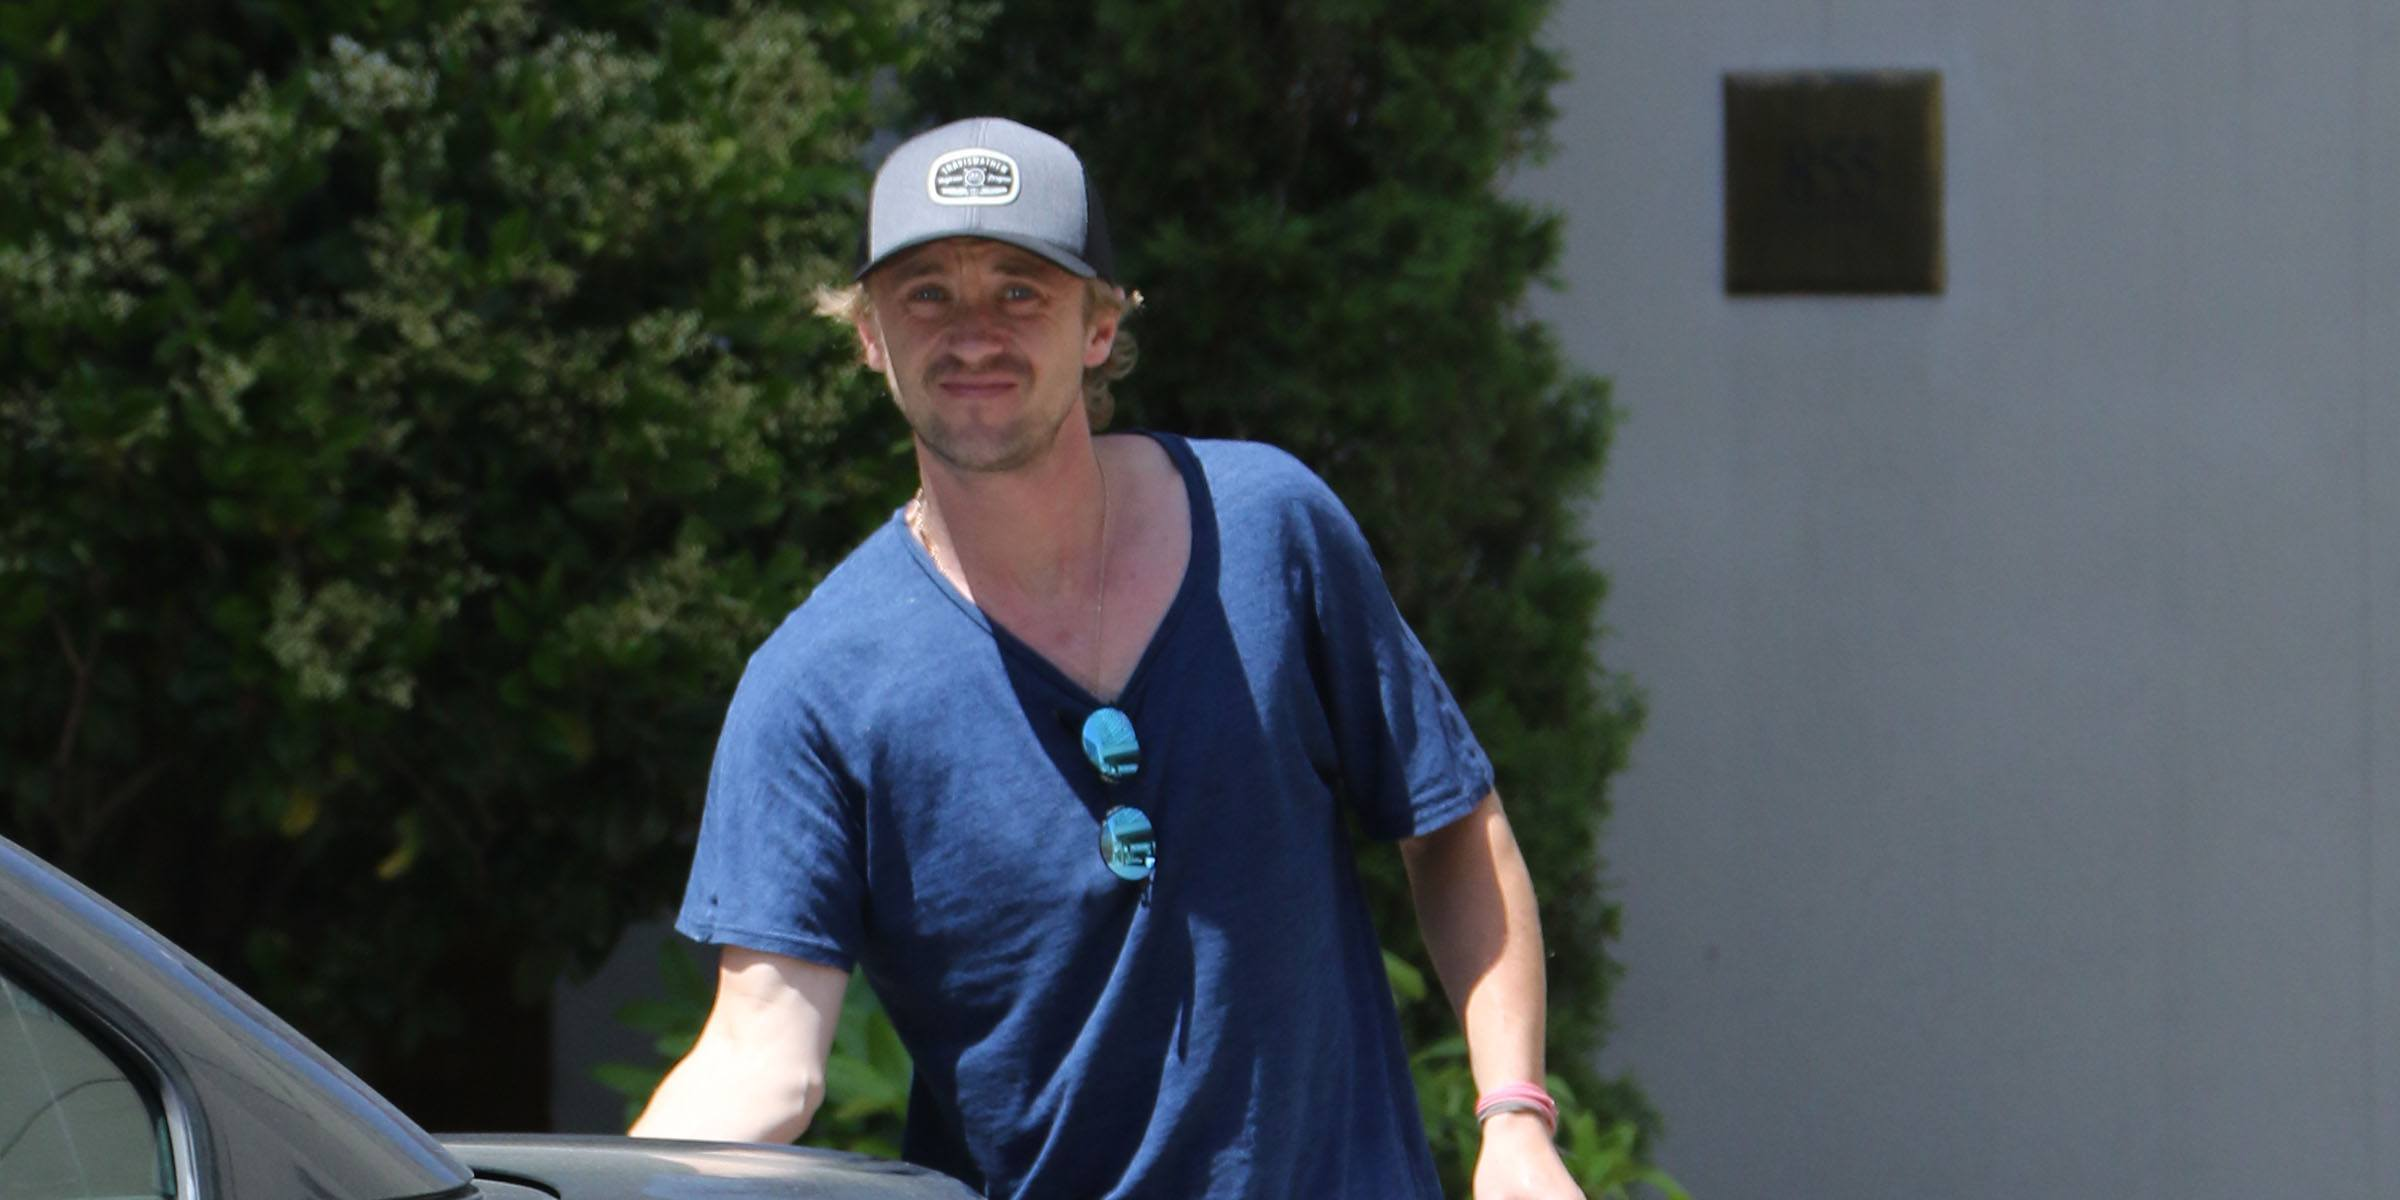 Tom Felton spotted in Vancouver, but will he back? (PHOTOS)